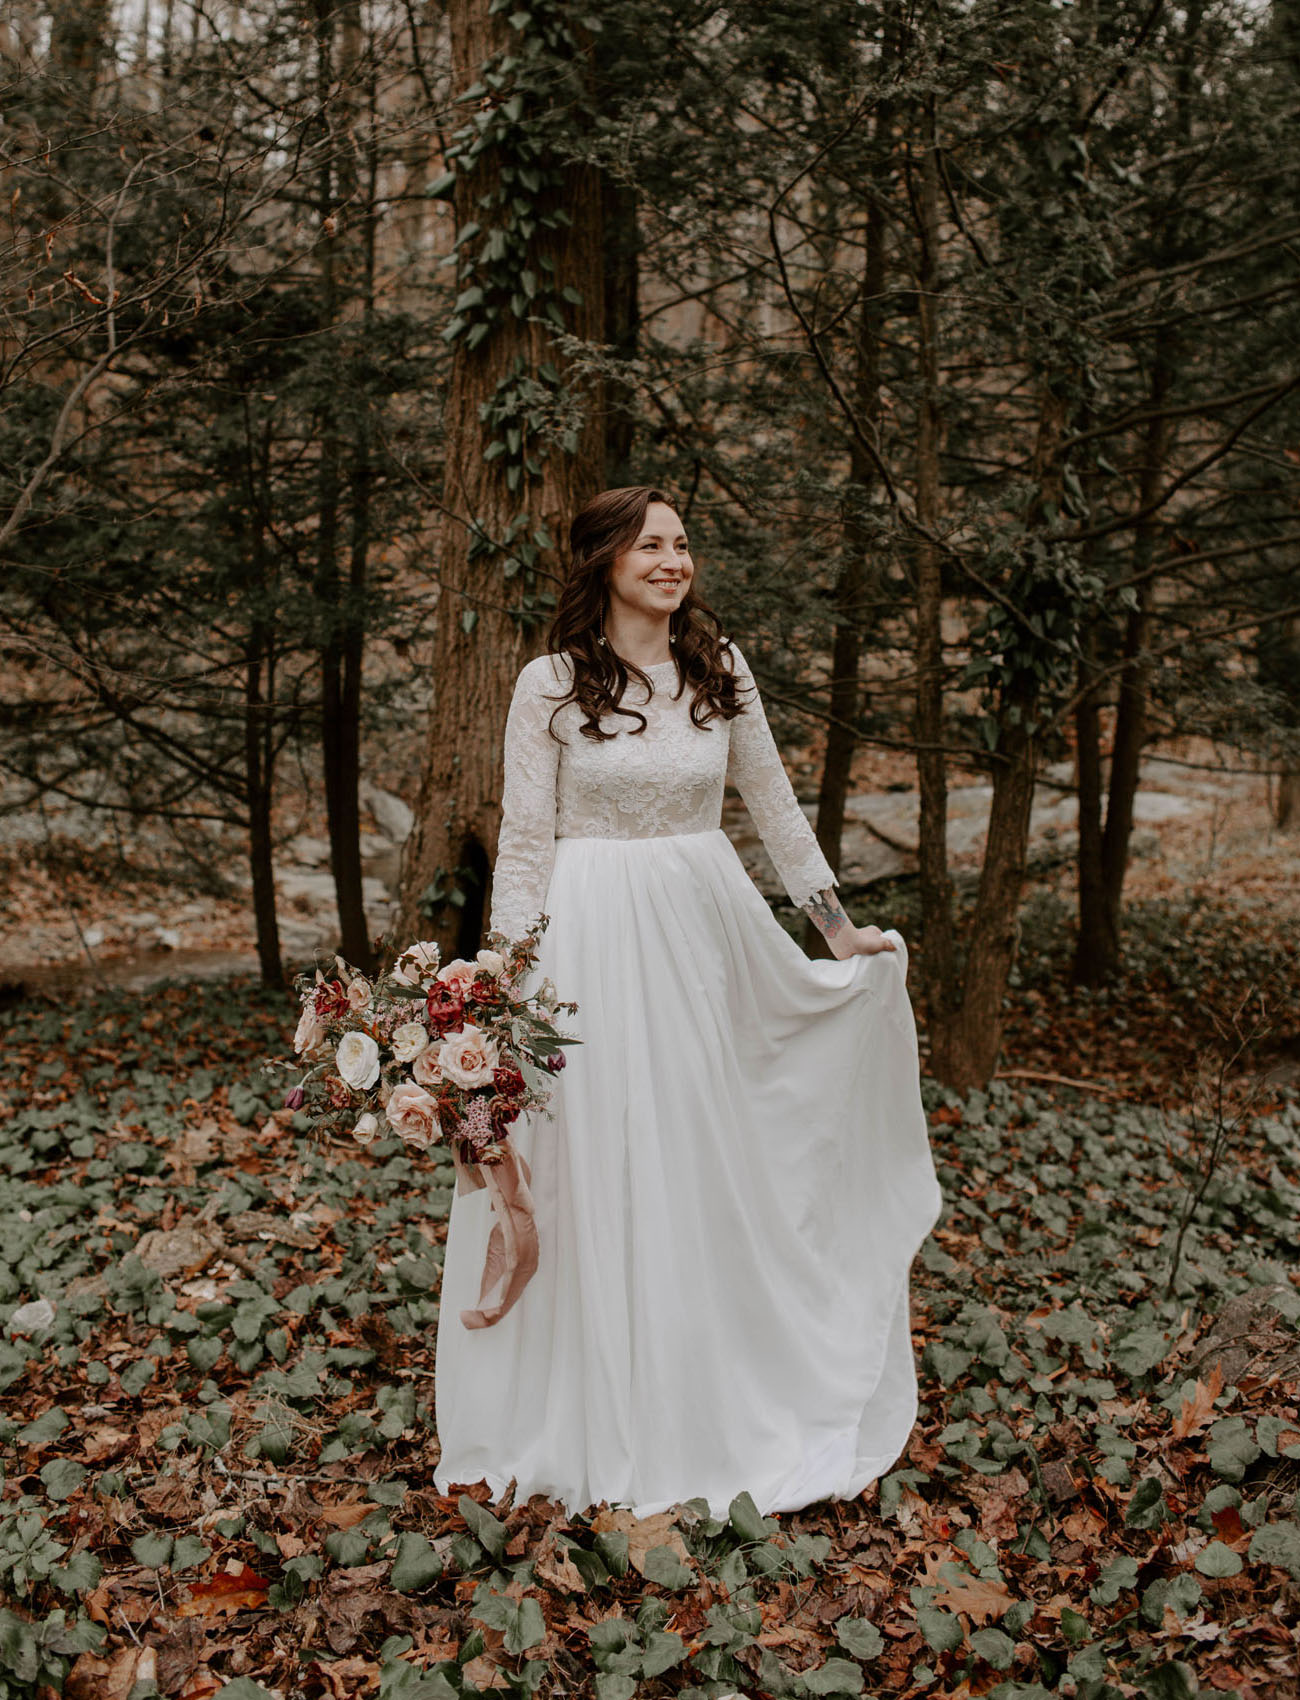 Hyacinth Bridal Wedding Dress